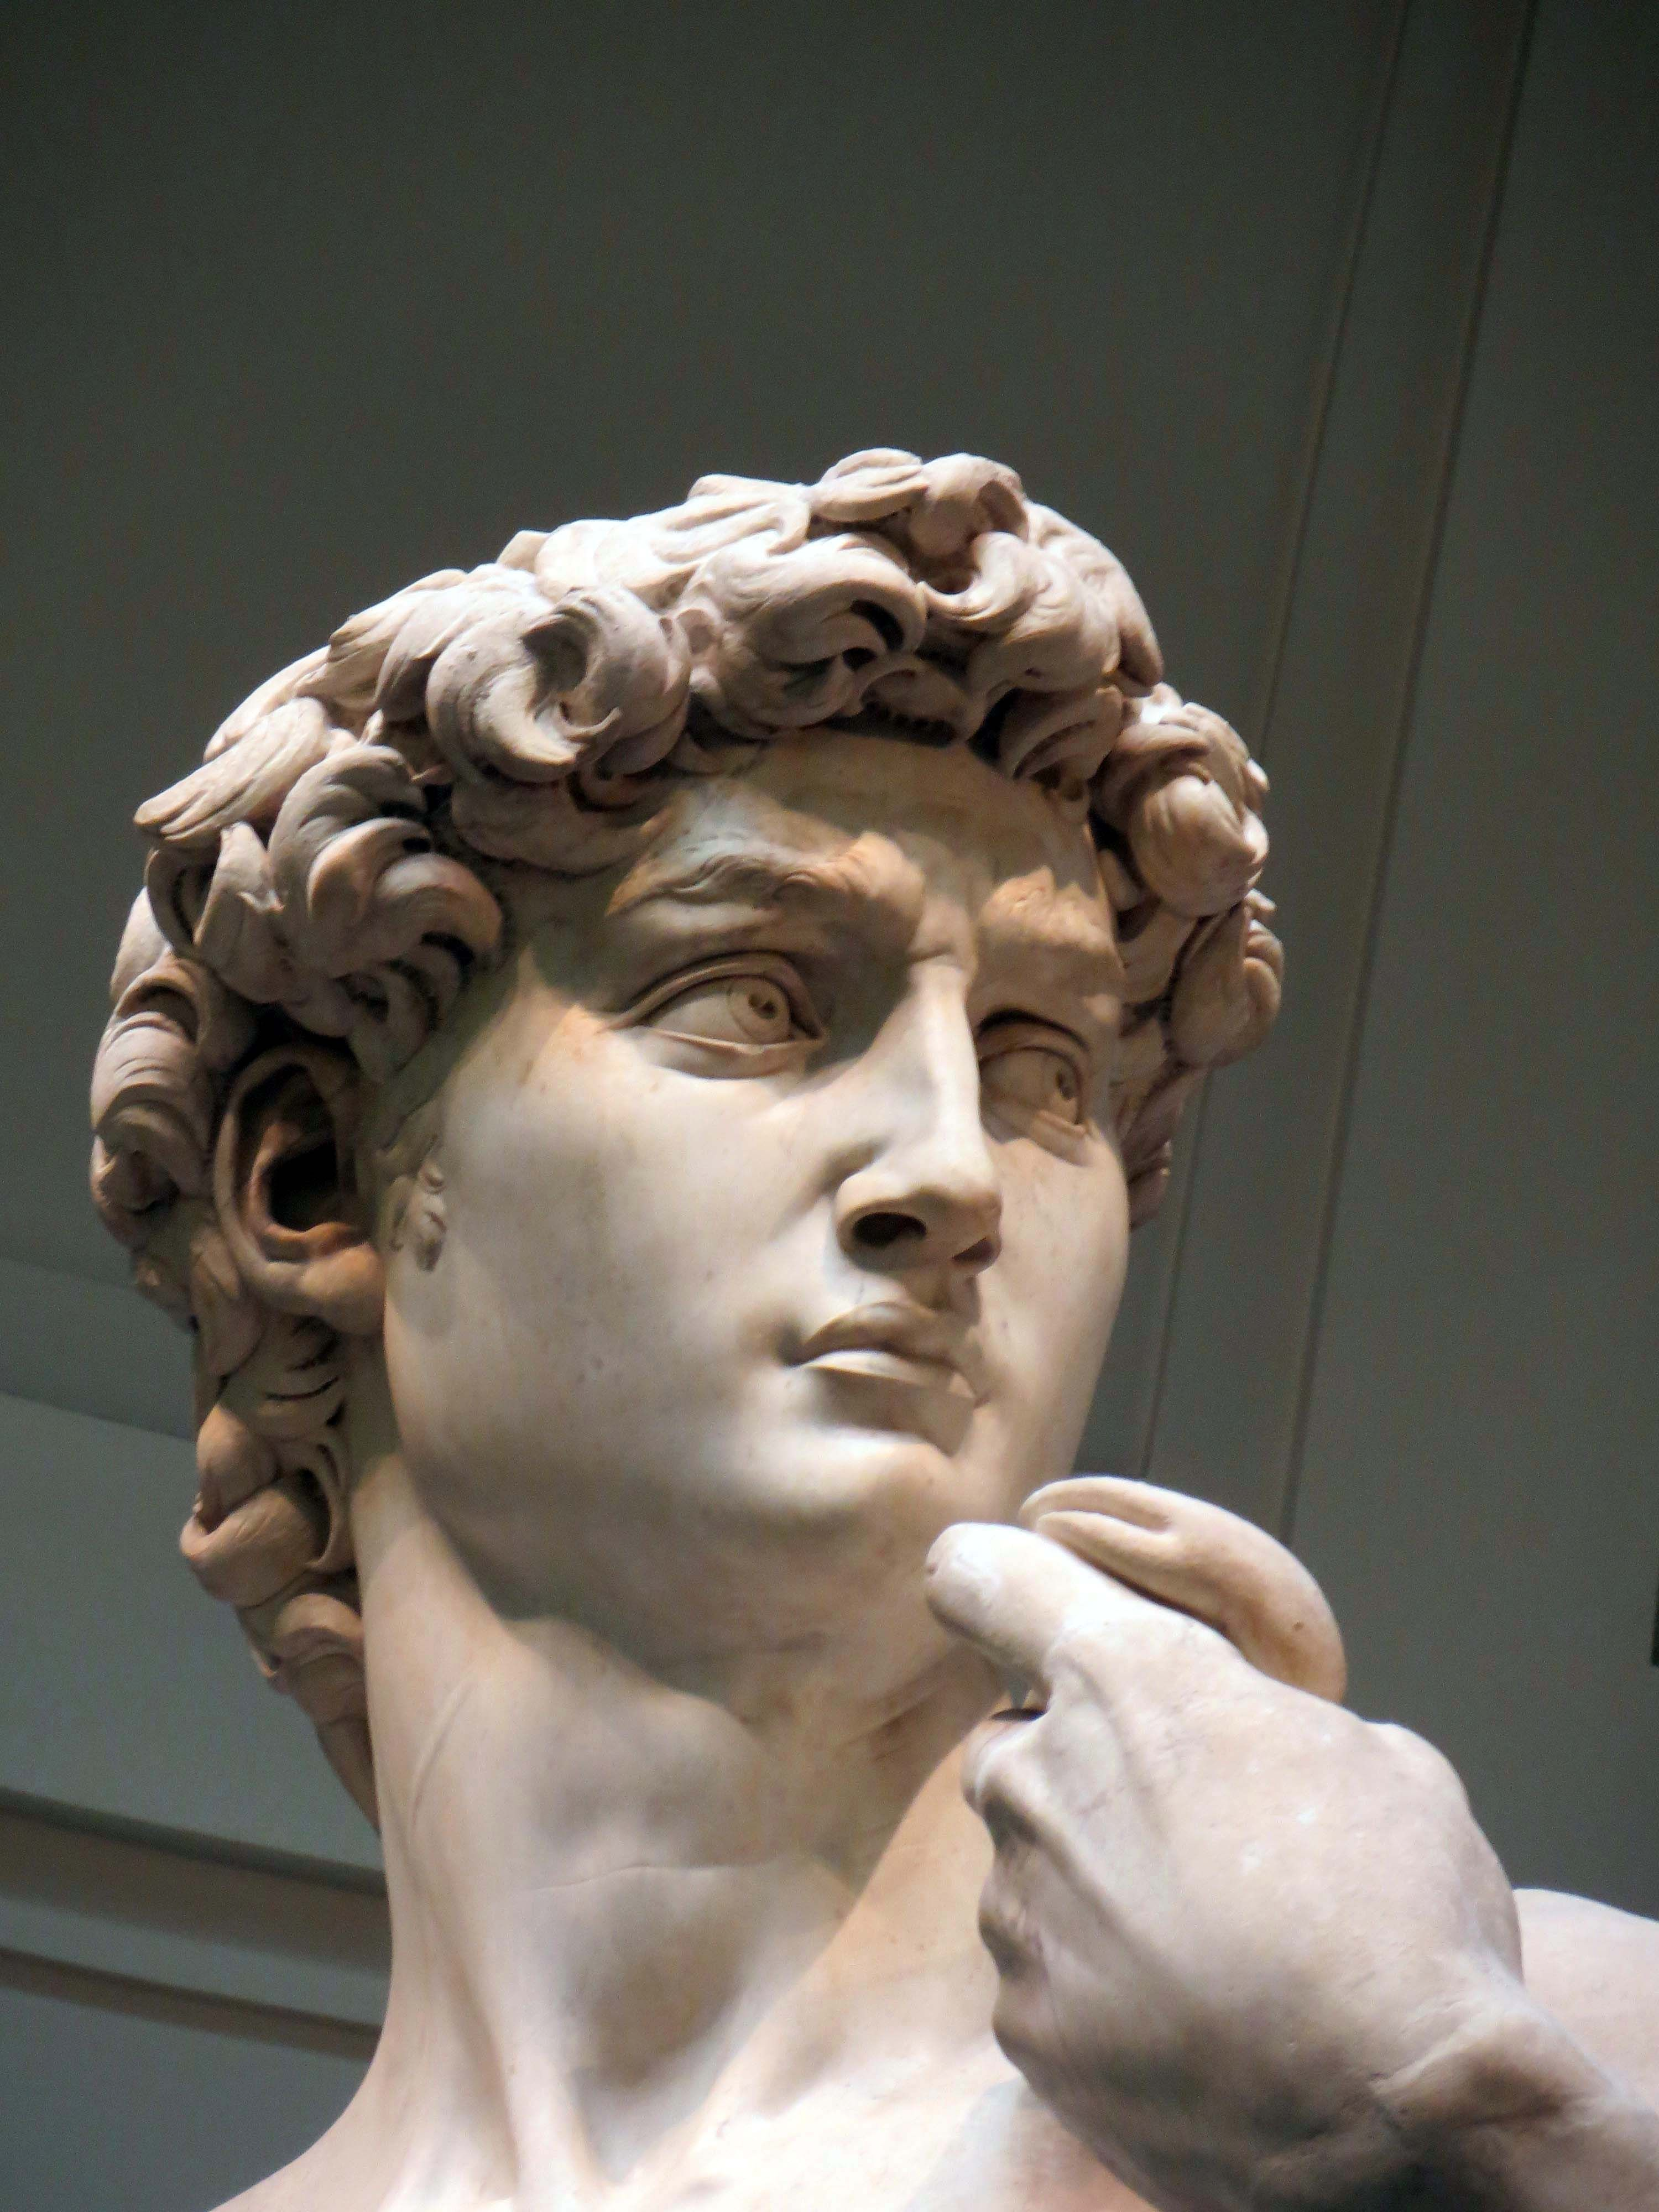 David's head from the original statue by Michelangelo